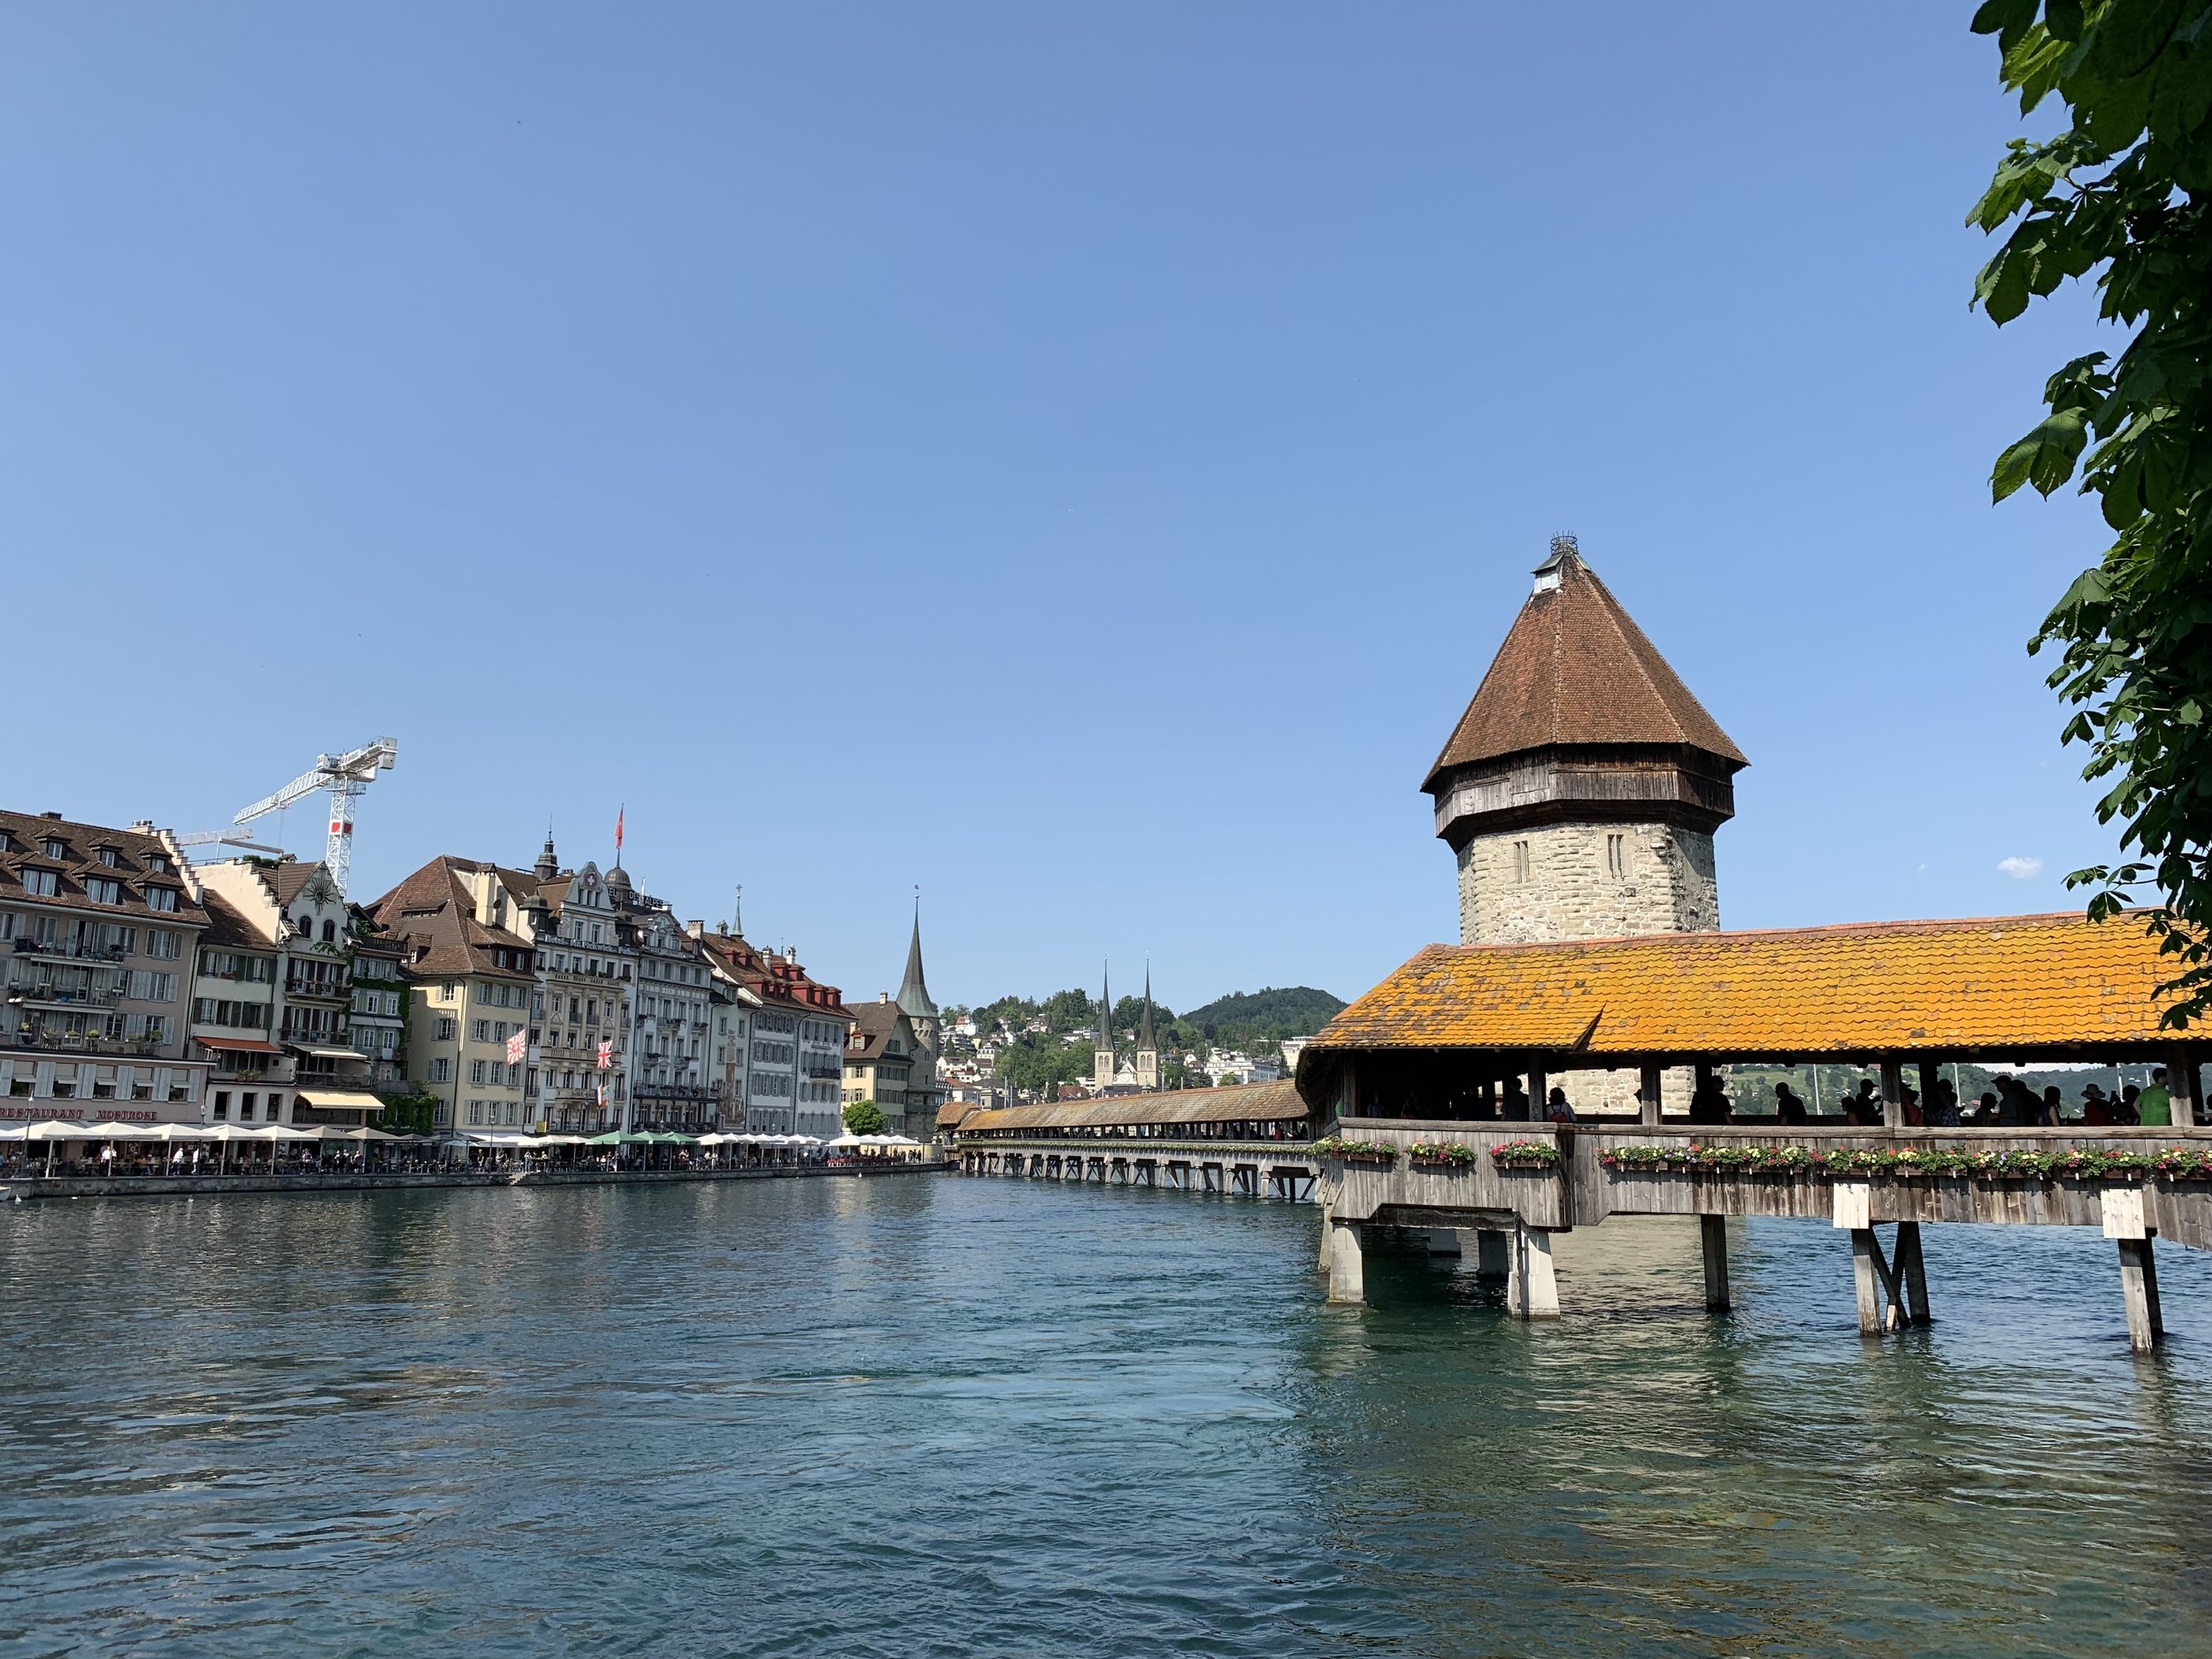 A view of old town Lucerne and the Kapellbrücke from a Reuss River bank. June 4, 2019.